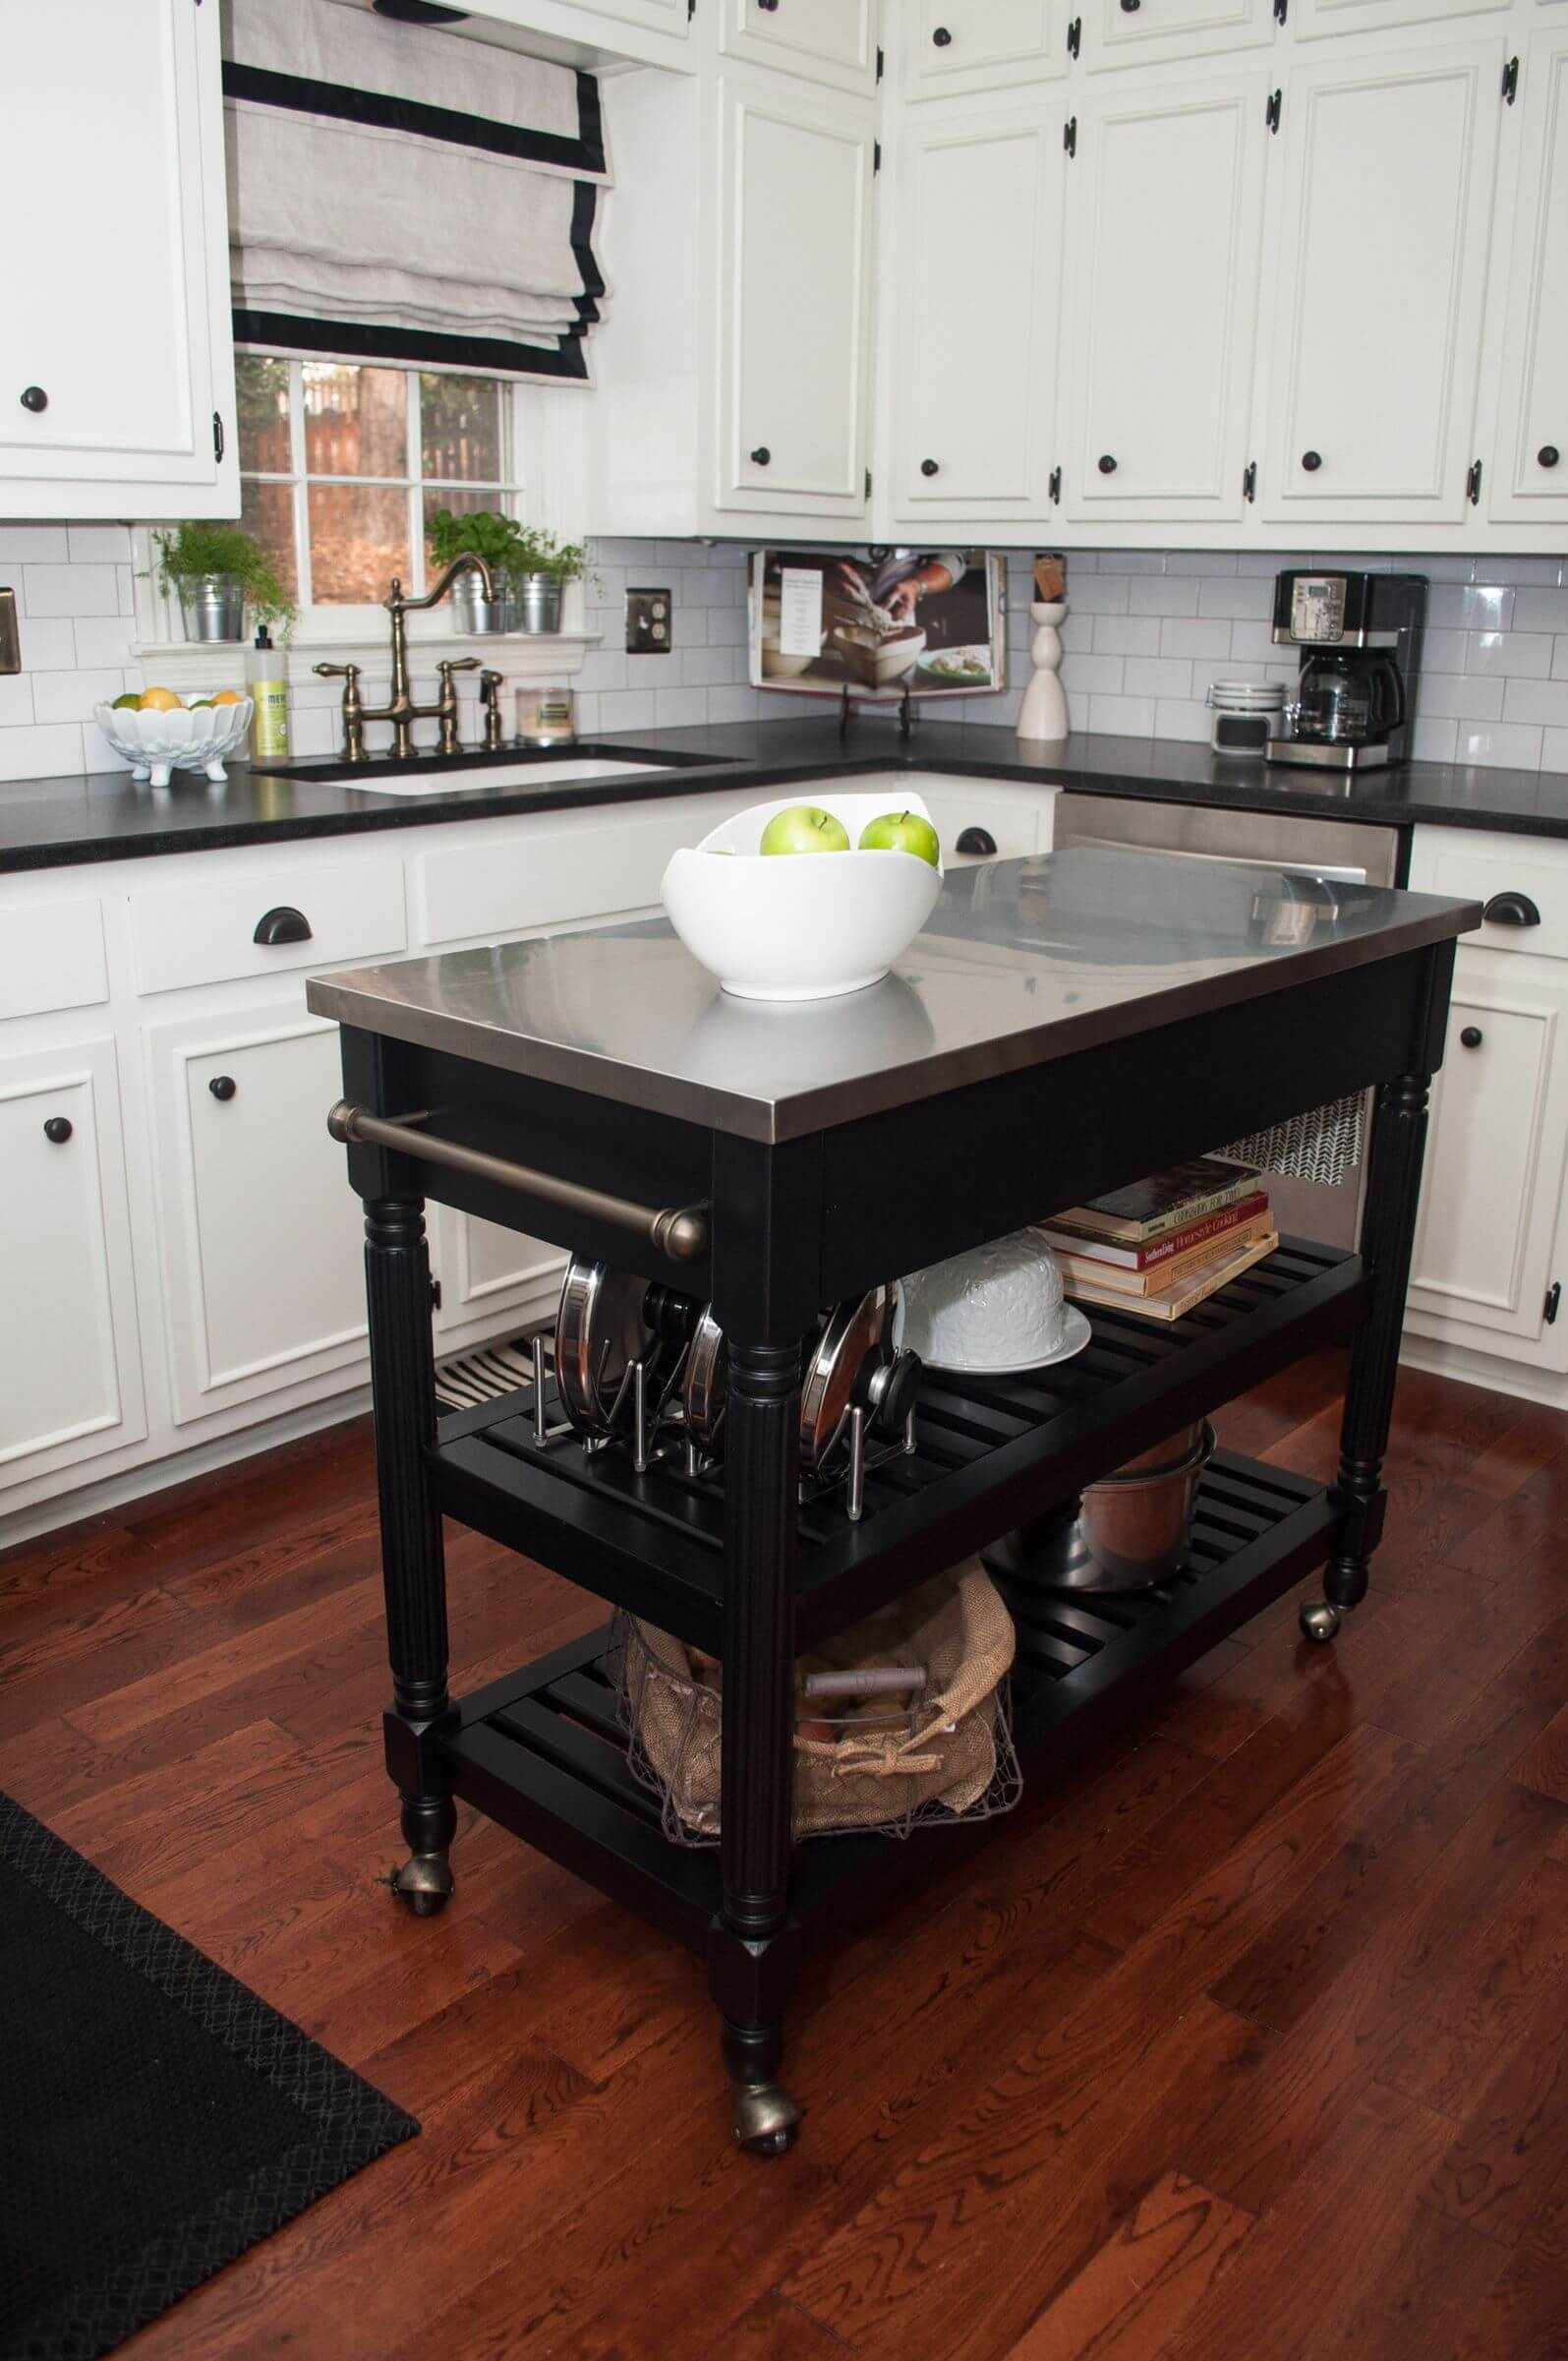 60 Types of Small Kitchen Islands & Carts on Wheels (2018) | Kitchen ...